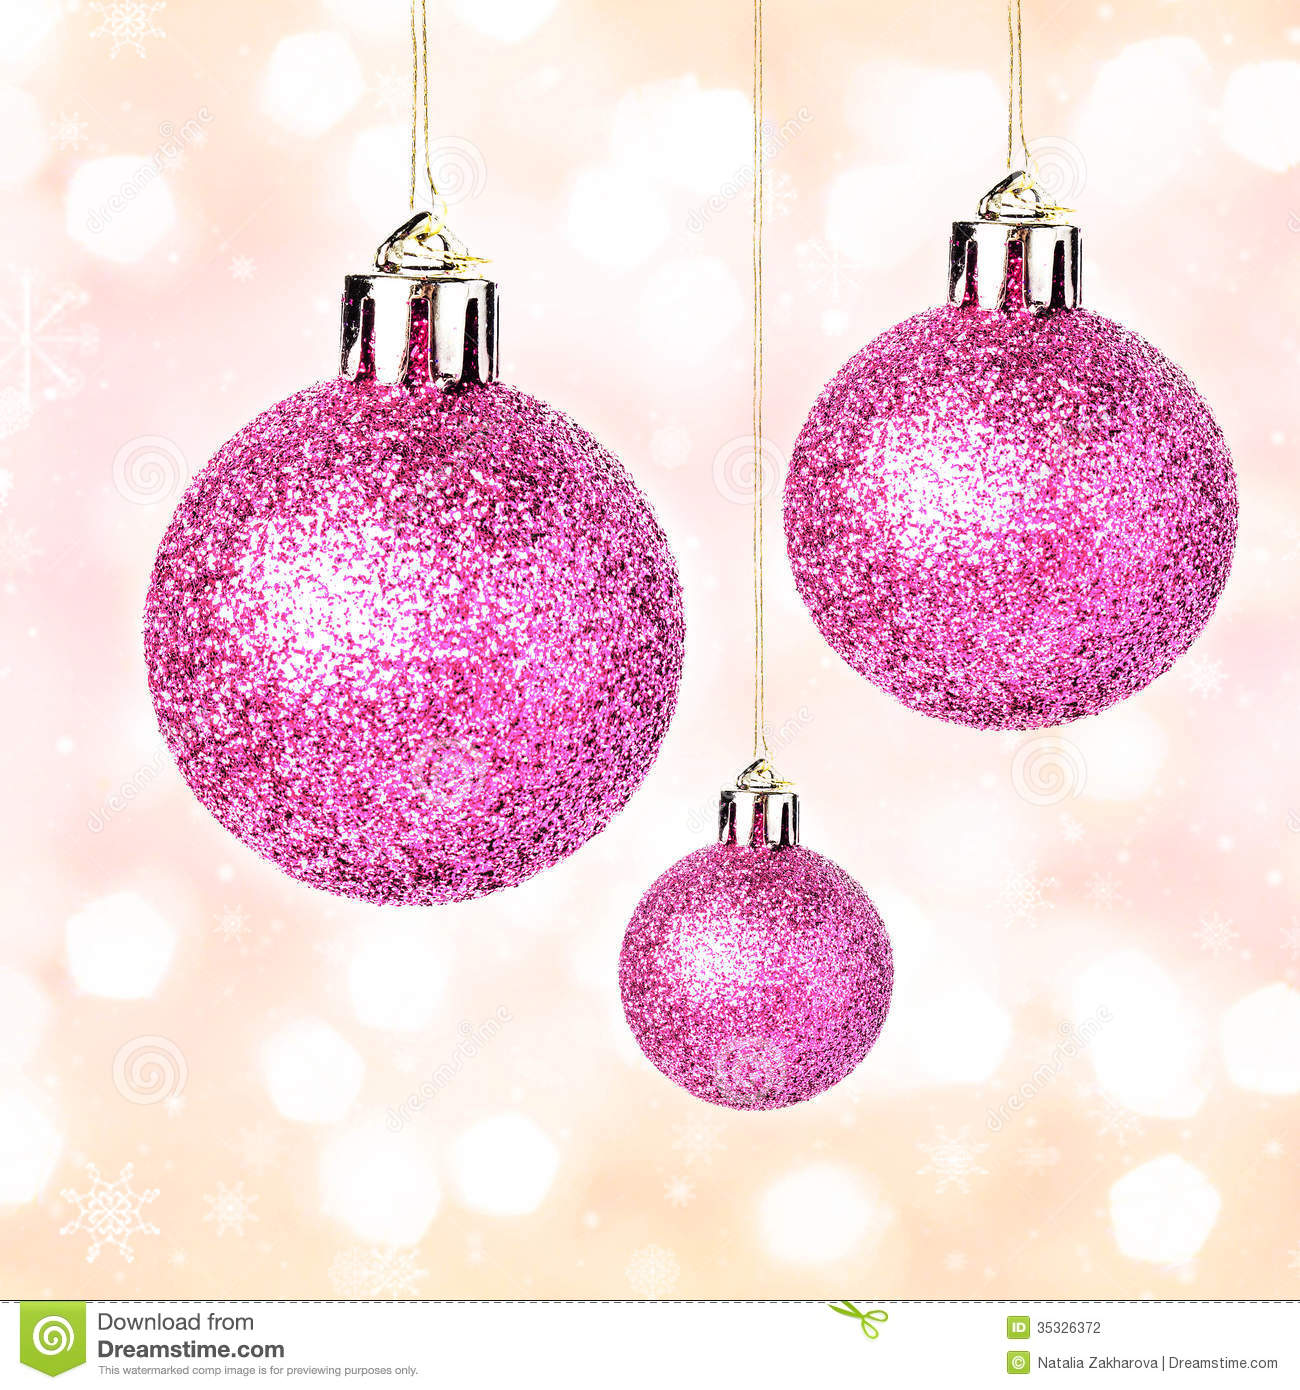 Christmas ornaments with shiny festive balls hanging on gold fes stock photography image 35326372 - Hanging christmas ornaments ...